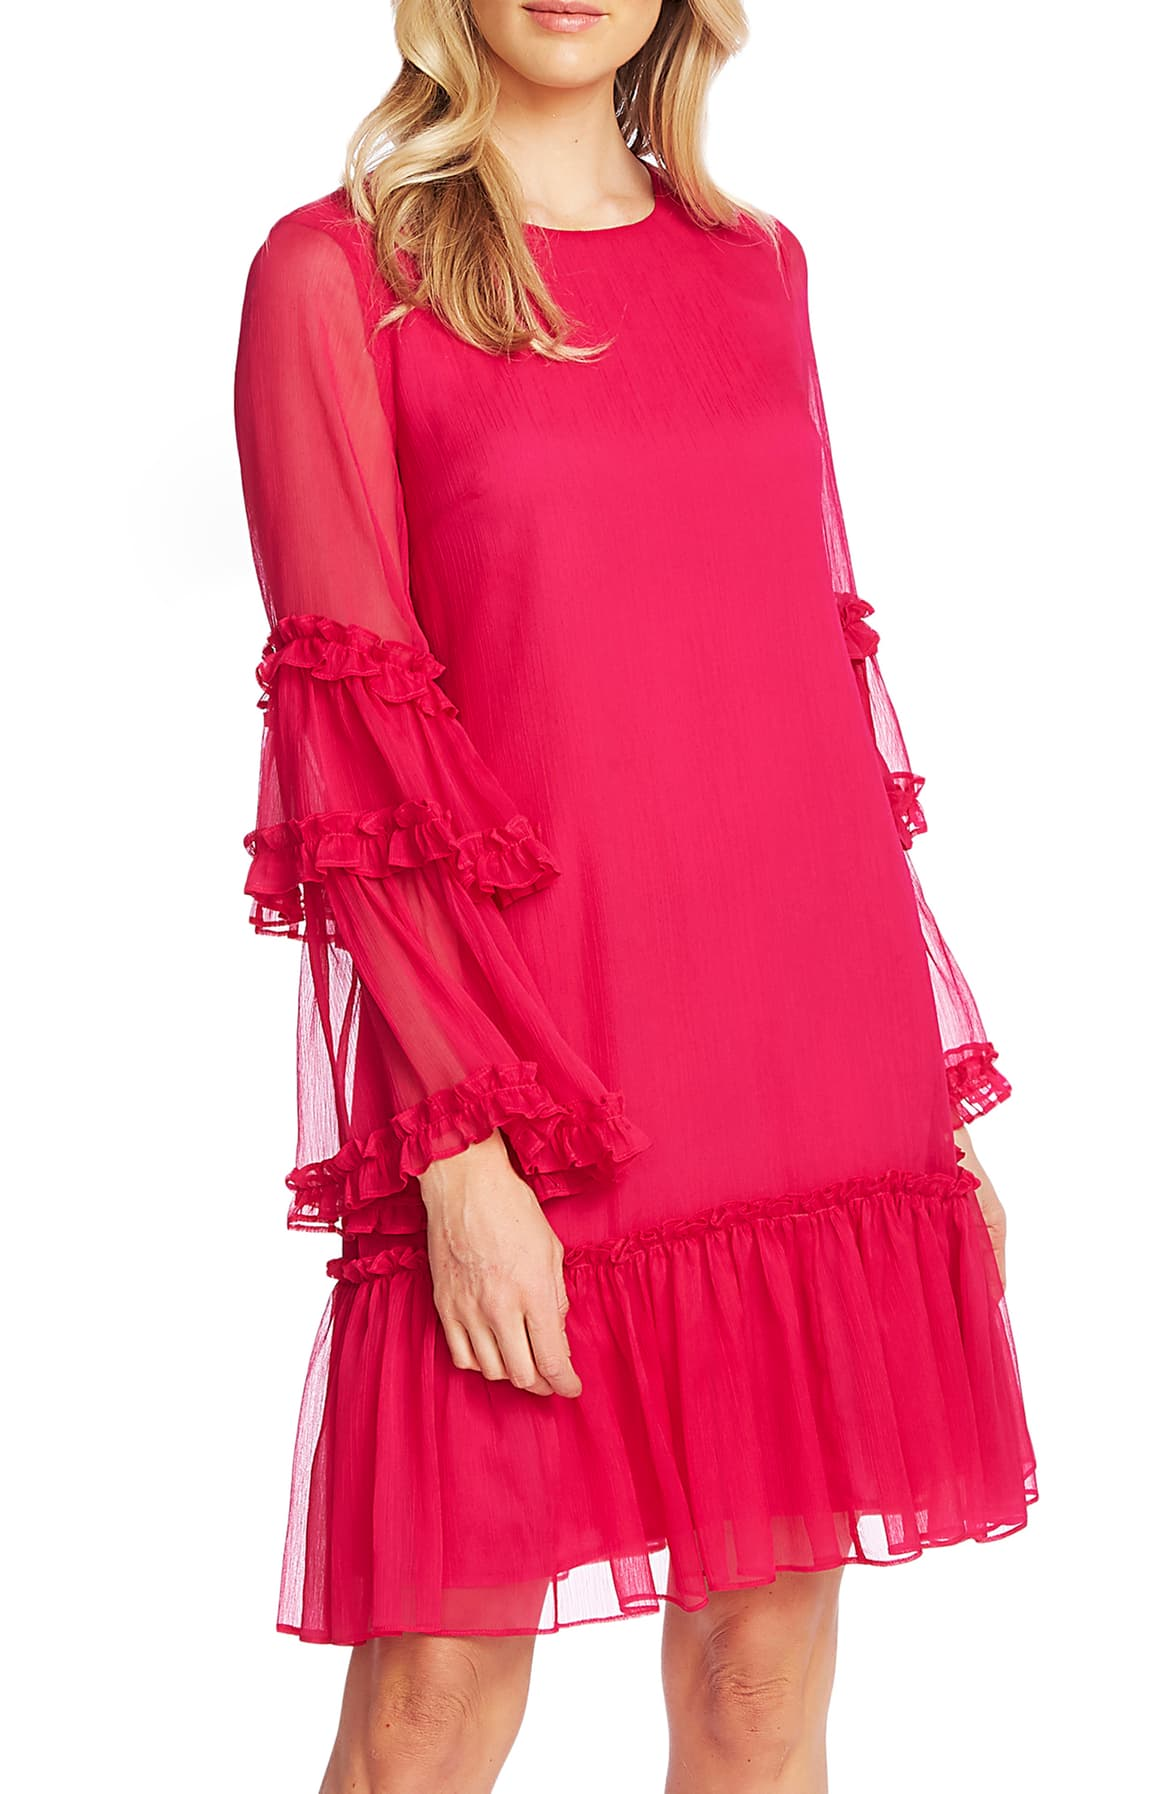 Charm everyone in the room wearing this crinkled chiffon shift, designed with ruffled bell sleeves and a flouncy frill-trimmed hem. $139 -{ }Shop the Look{ }(Image: Nordstrom){ }